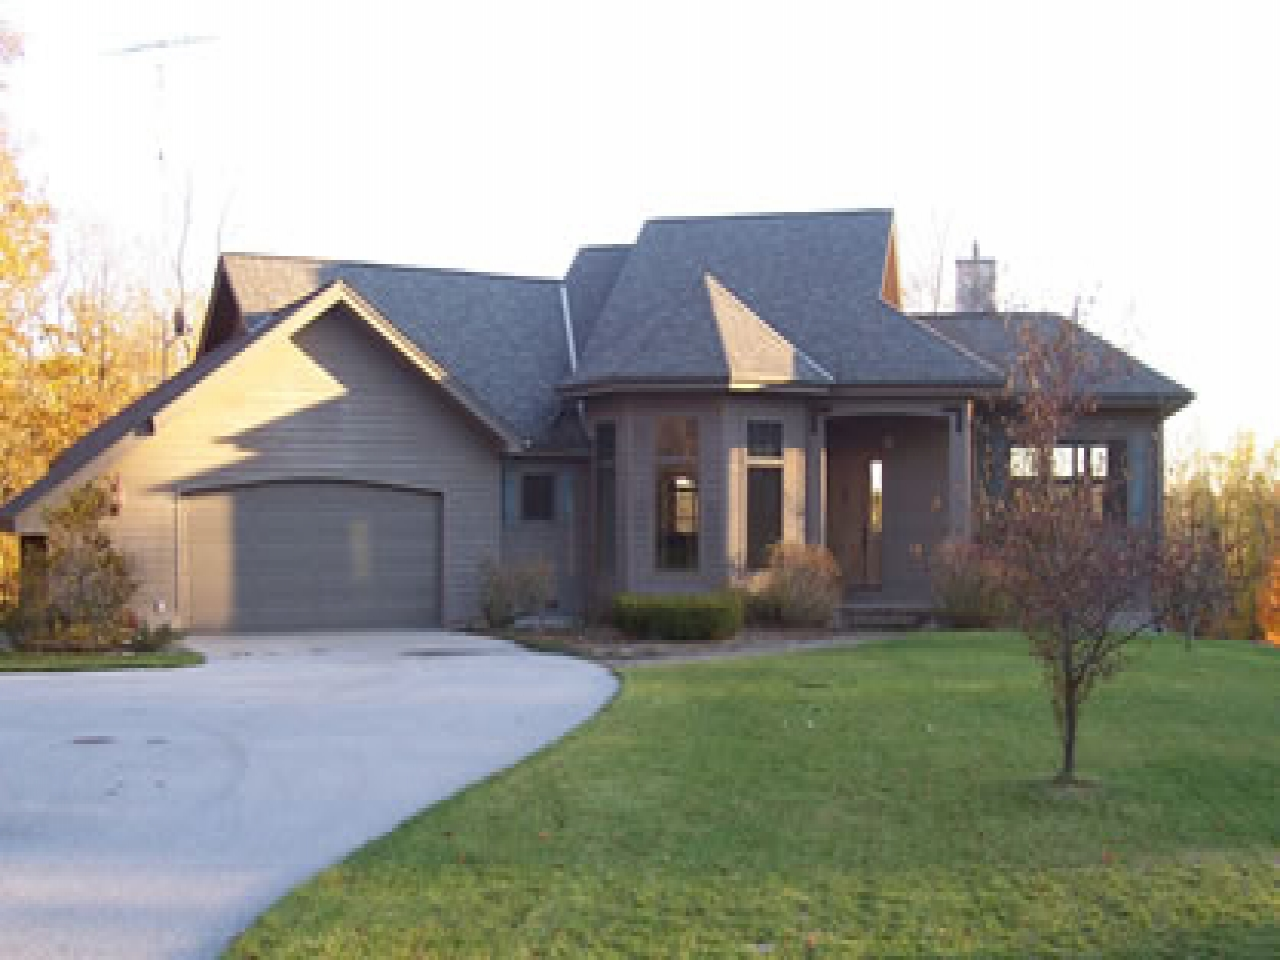 Ranch House With Breezeway And Garage Plans on building breezeway between house garage, house with breezeway attached garage, tower house plans with garage, house with breezeway to garage,